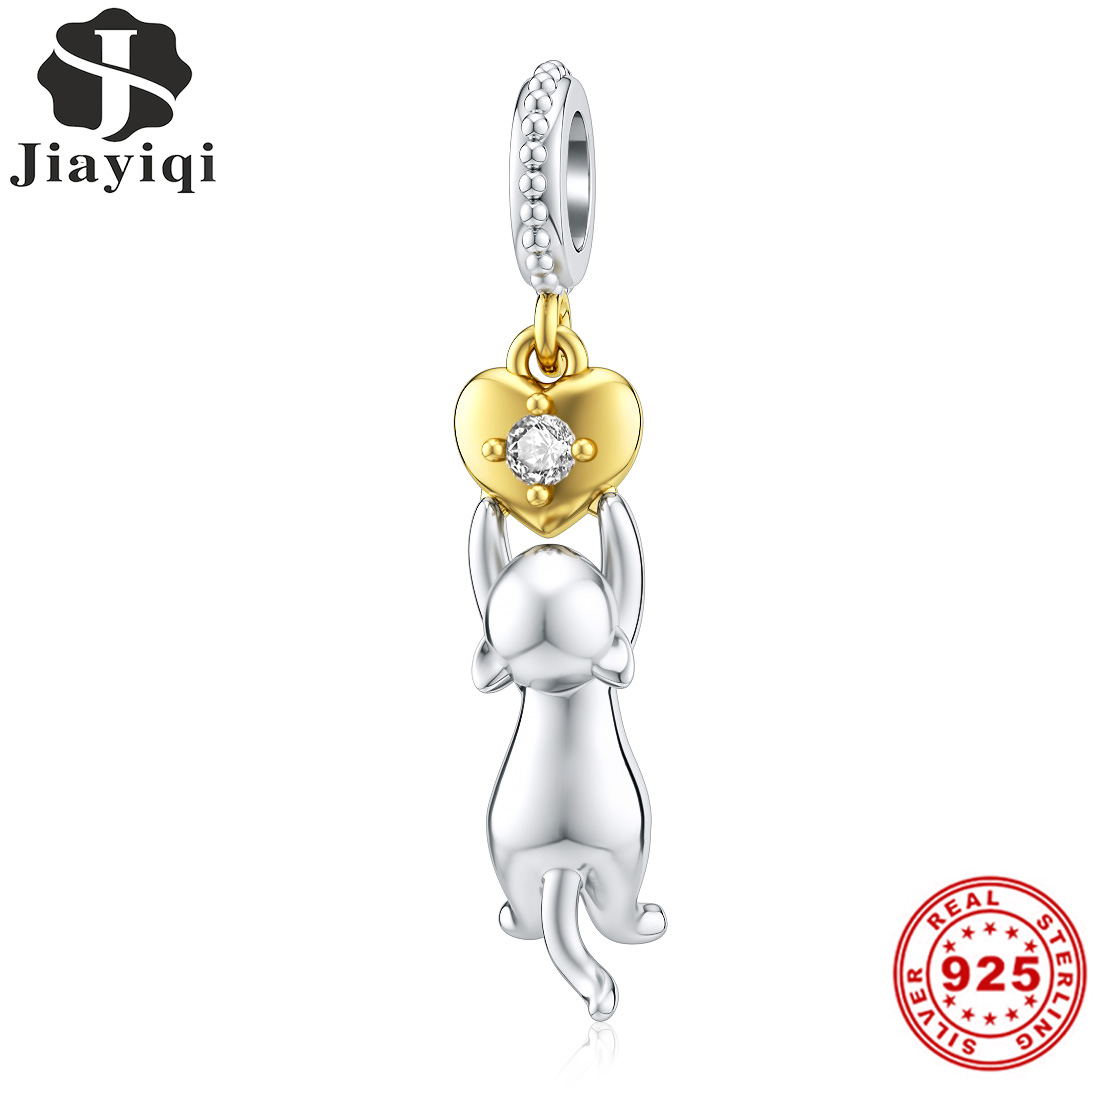 Jiayiqi Cute Cat Grab Heart 925 Silver Charms DIY Making Bead Fit Pandora Bracelet Sterling Silver Fine Jewelry Finding